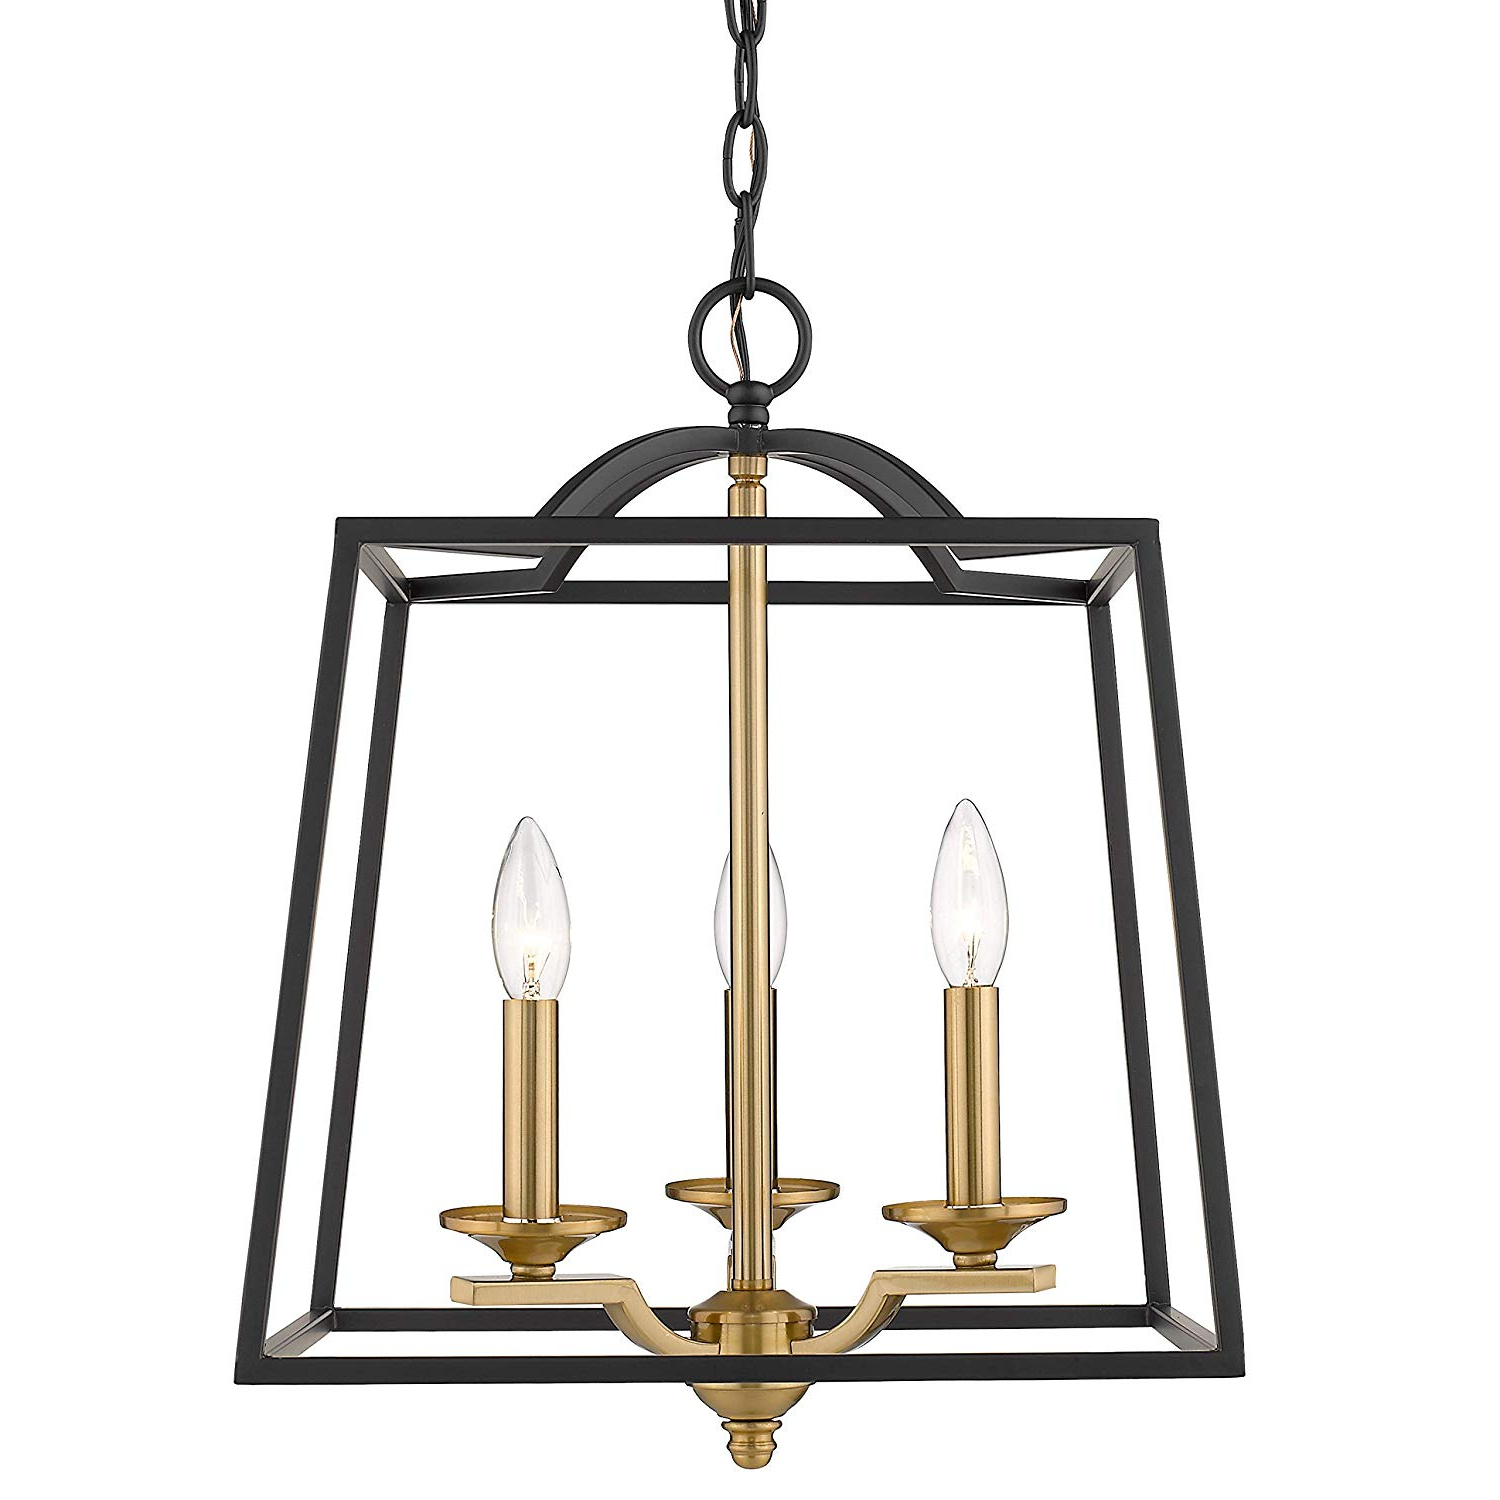 Emliviar 3 Light Foyer Chandelier, Pendant Light With Lantern Style Cage  Hanging Light Fixture For Hall Kitchen Island, Black And Gold Finish,  2086P-3 within Popular Kenedy 9-Light Candle Style Chandeliers